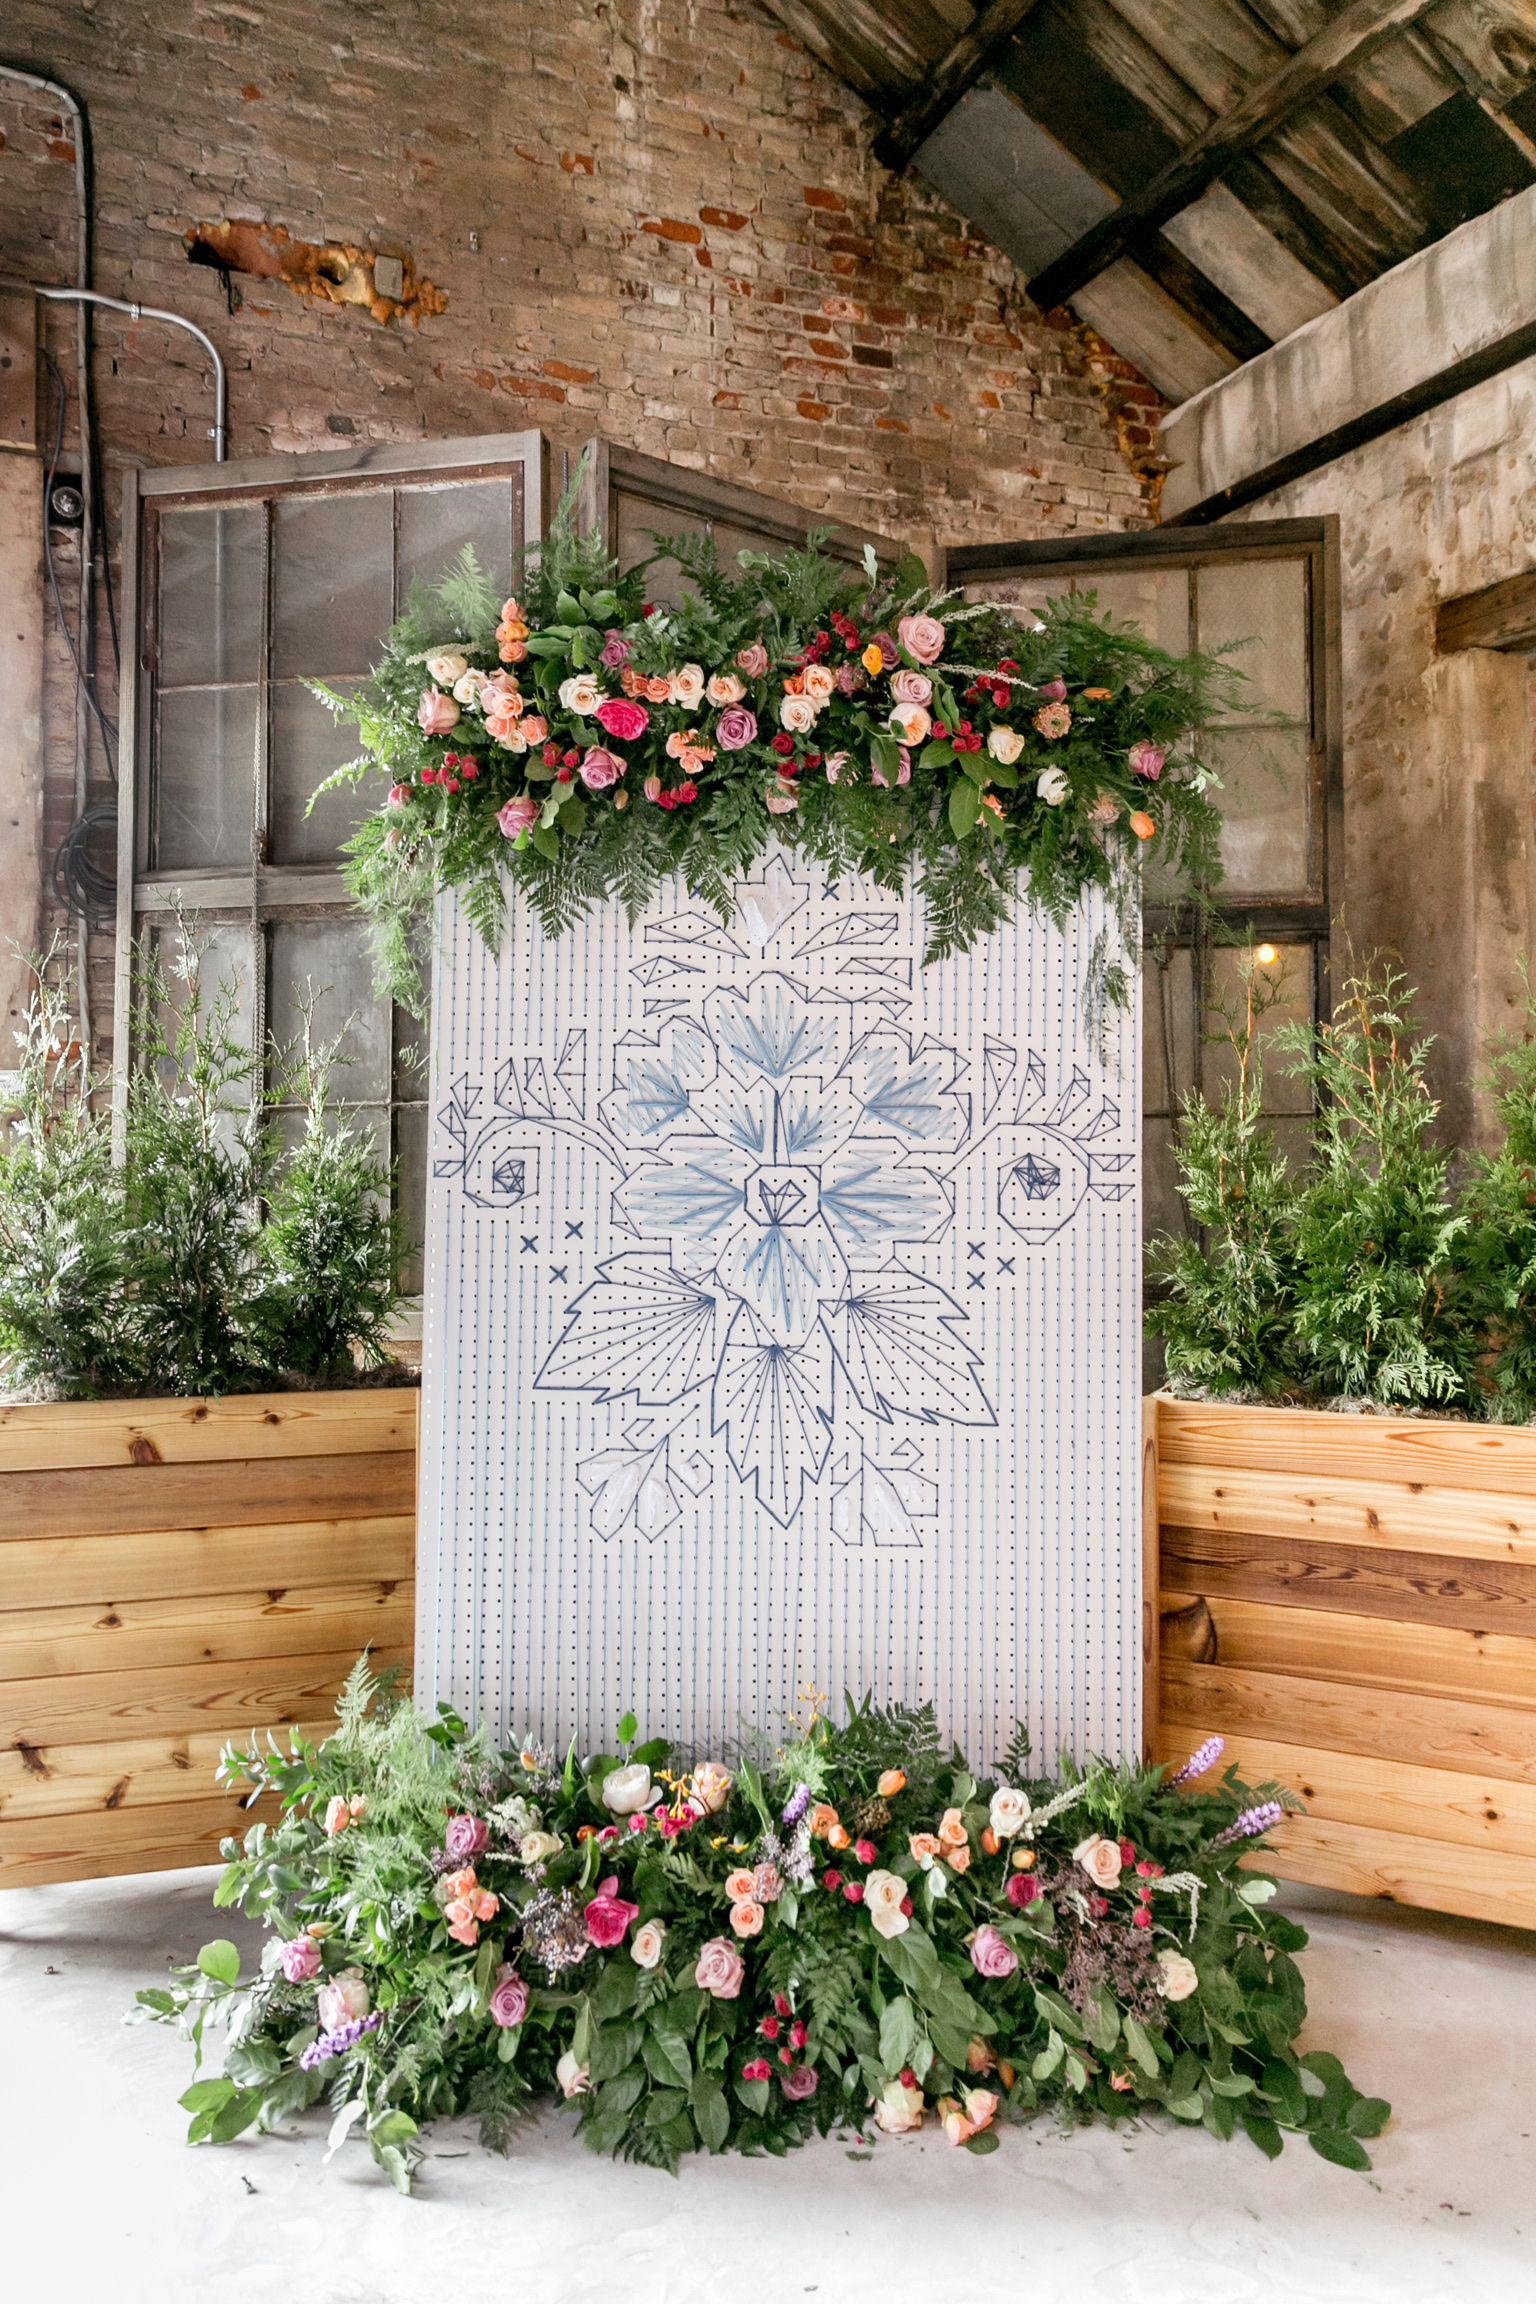 Belovely created this AMAZING string art ceremony backdrop!